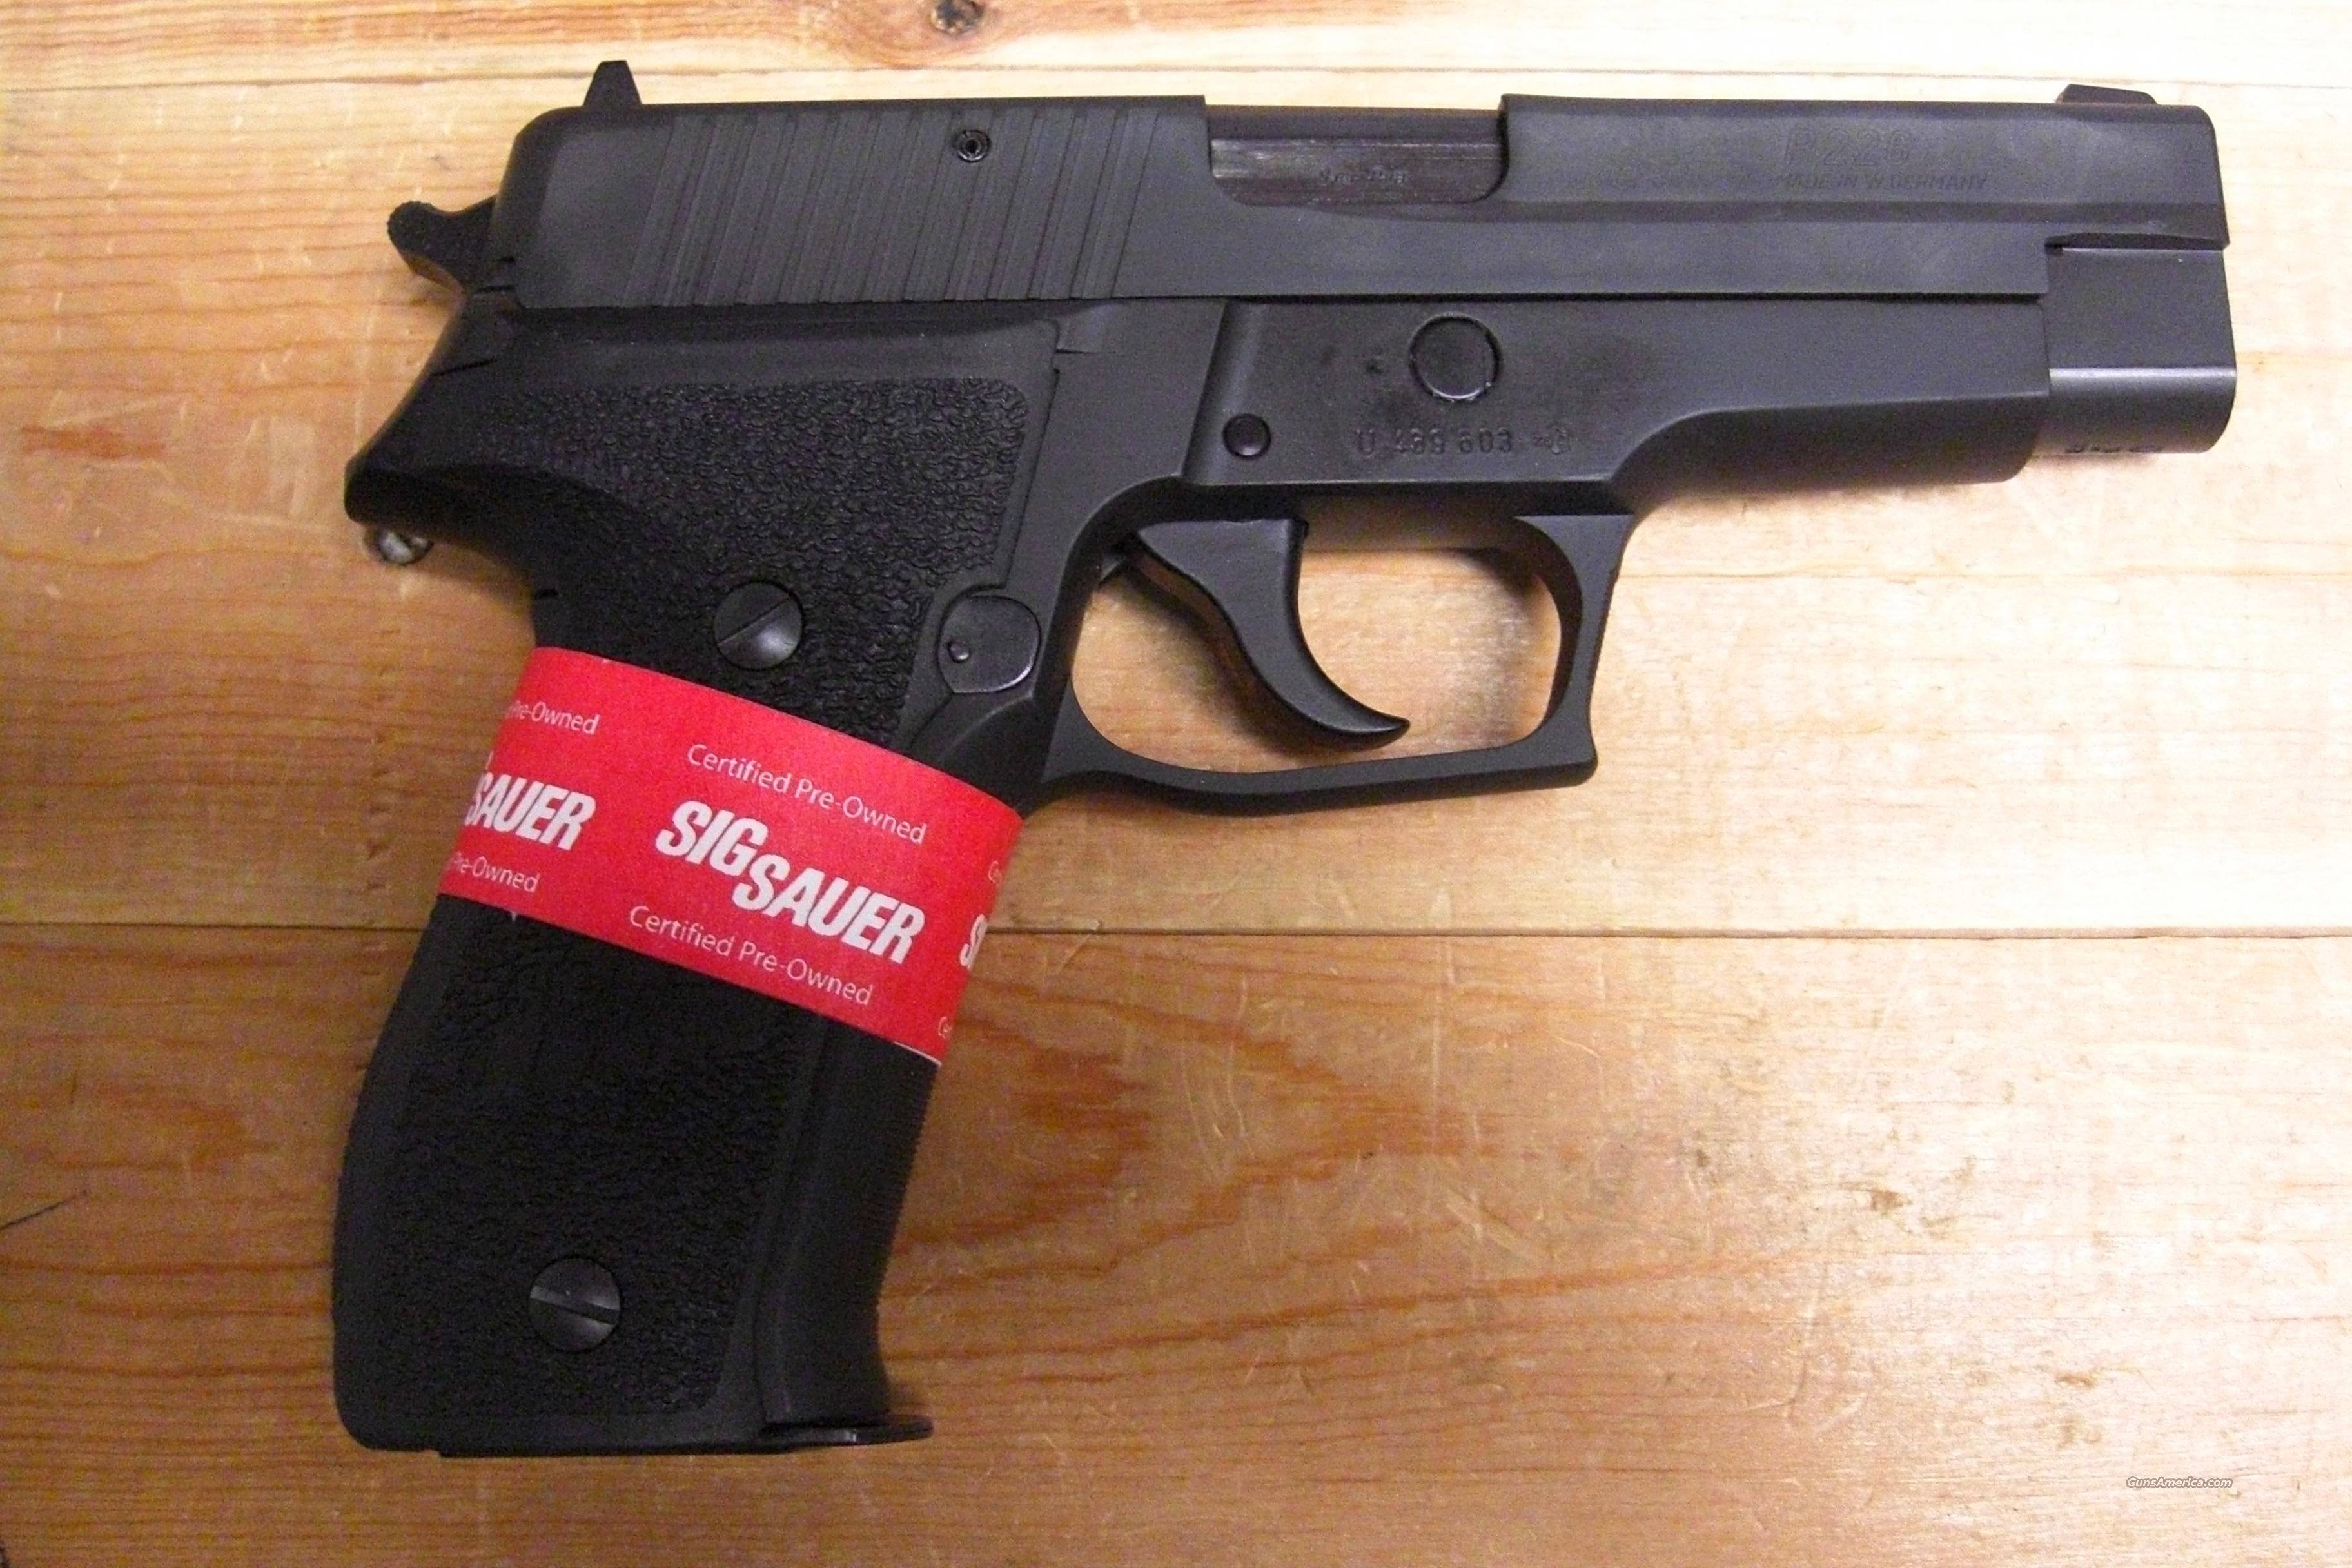 P226 factory refurbished  Guns > Pistols > Sig - Sauer/Sigarms Pistols > P226